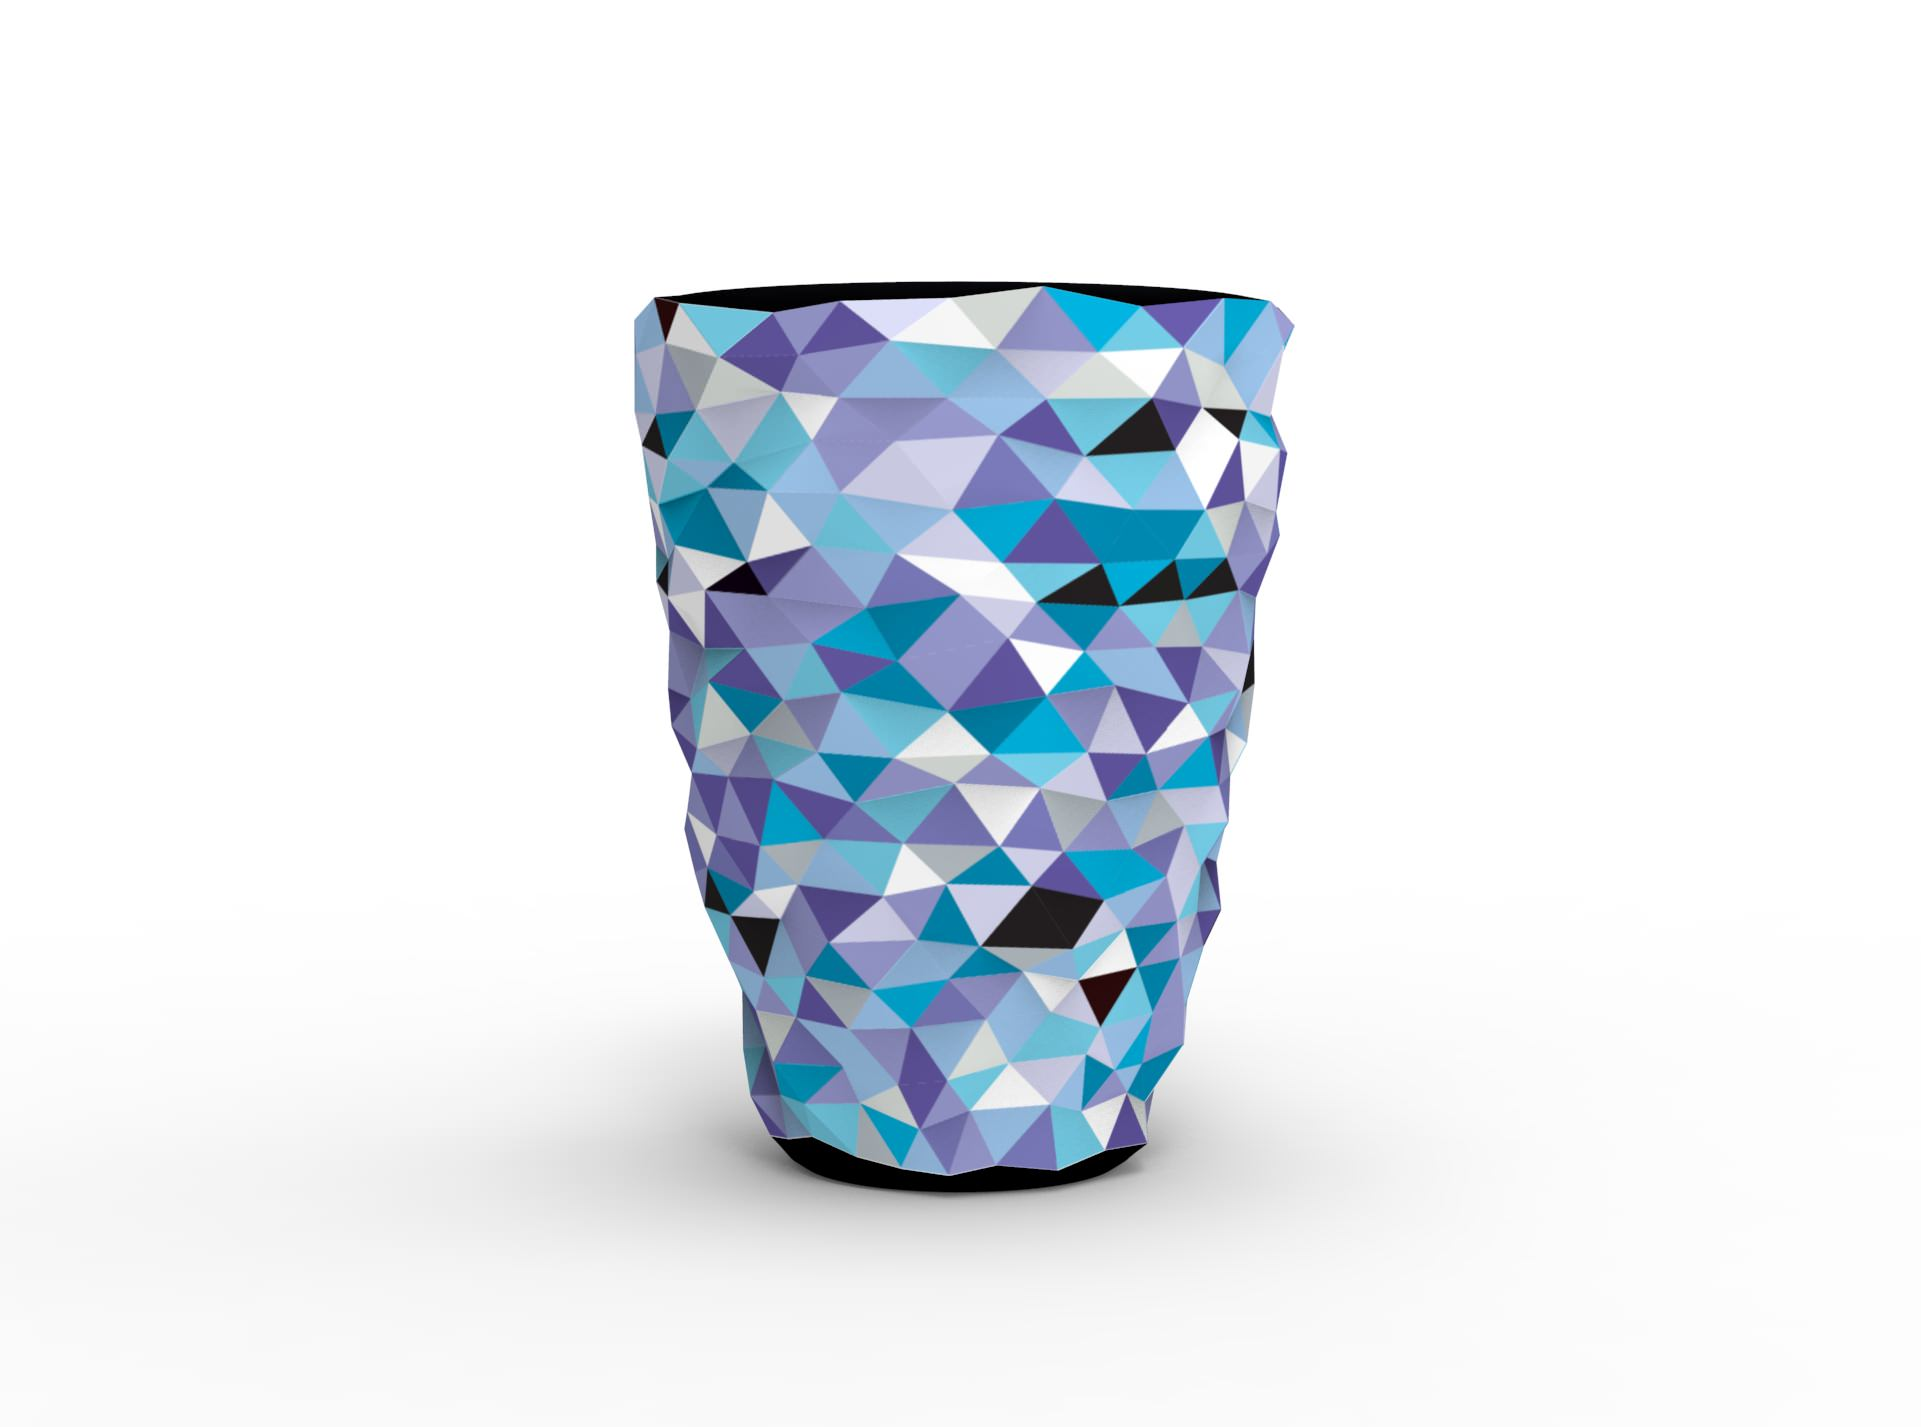 printed on vases olivier van dezeen clay design herpt homeware x designs vase hero collection based cos